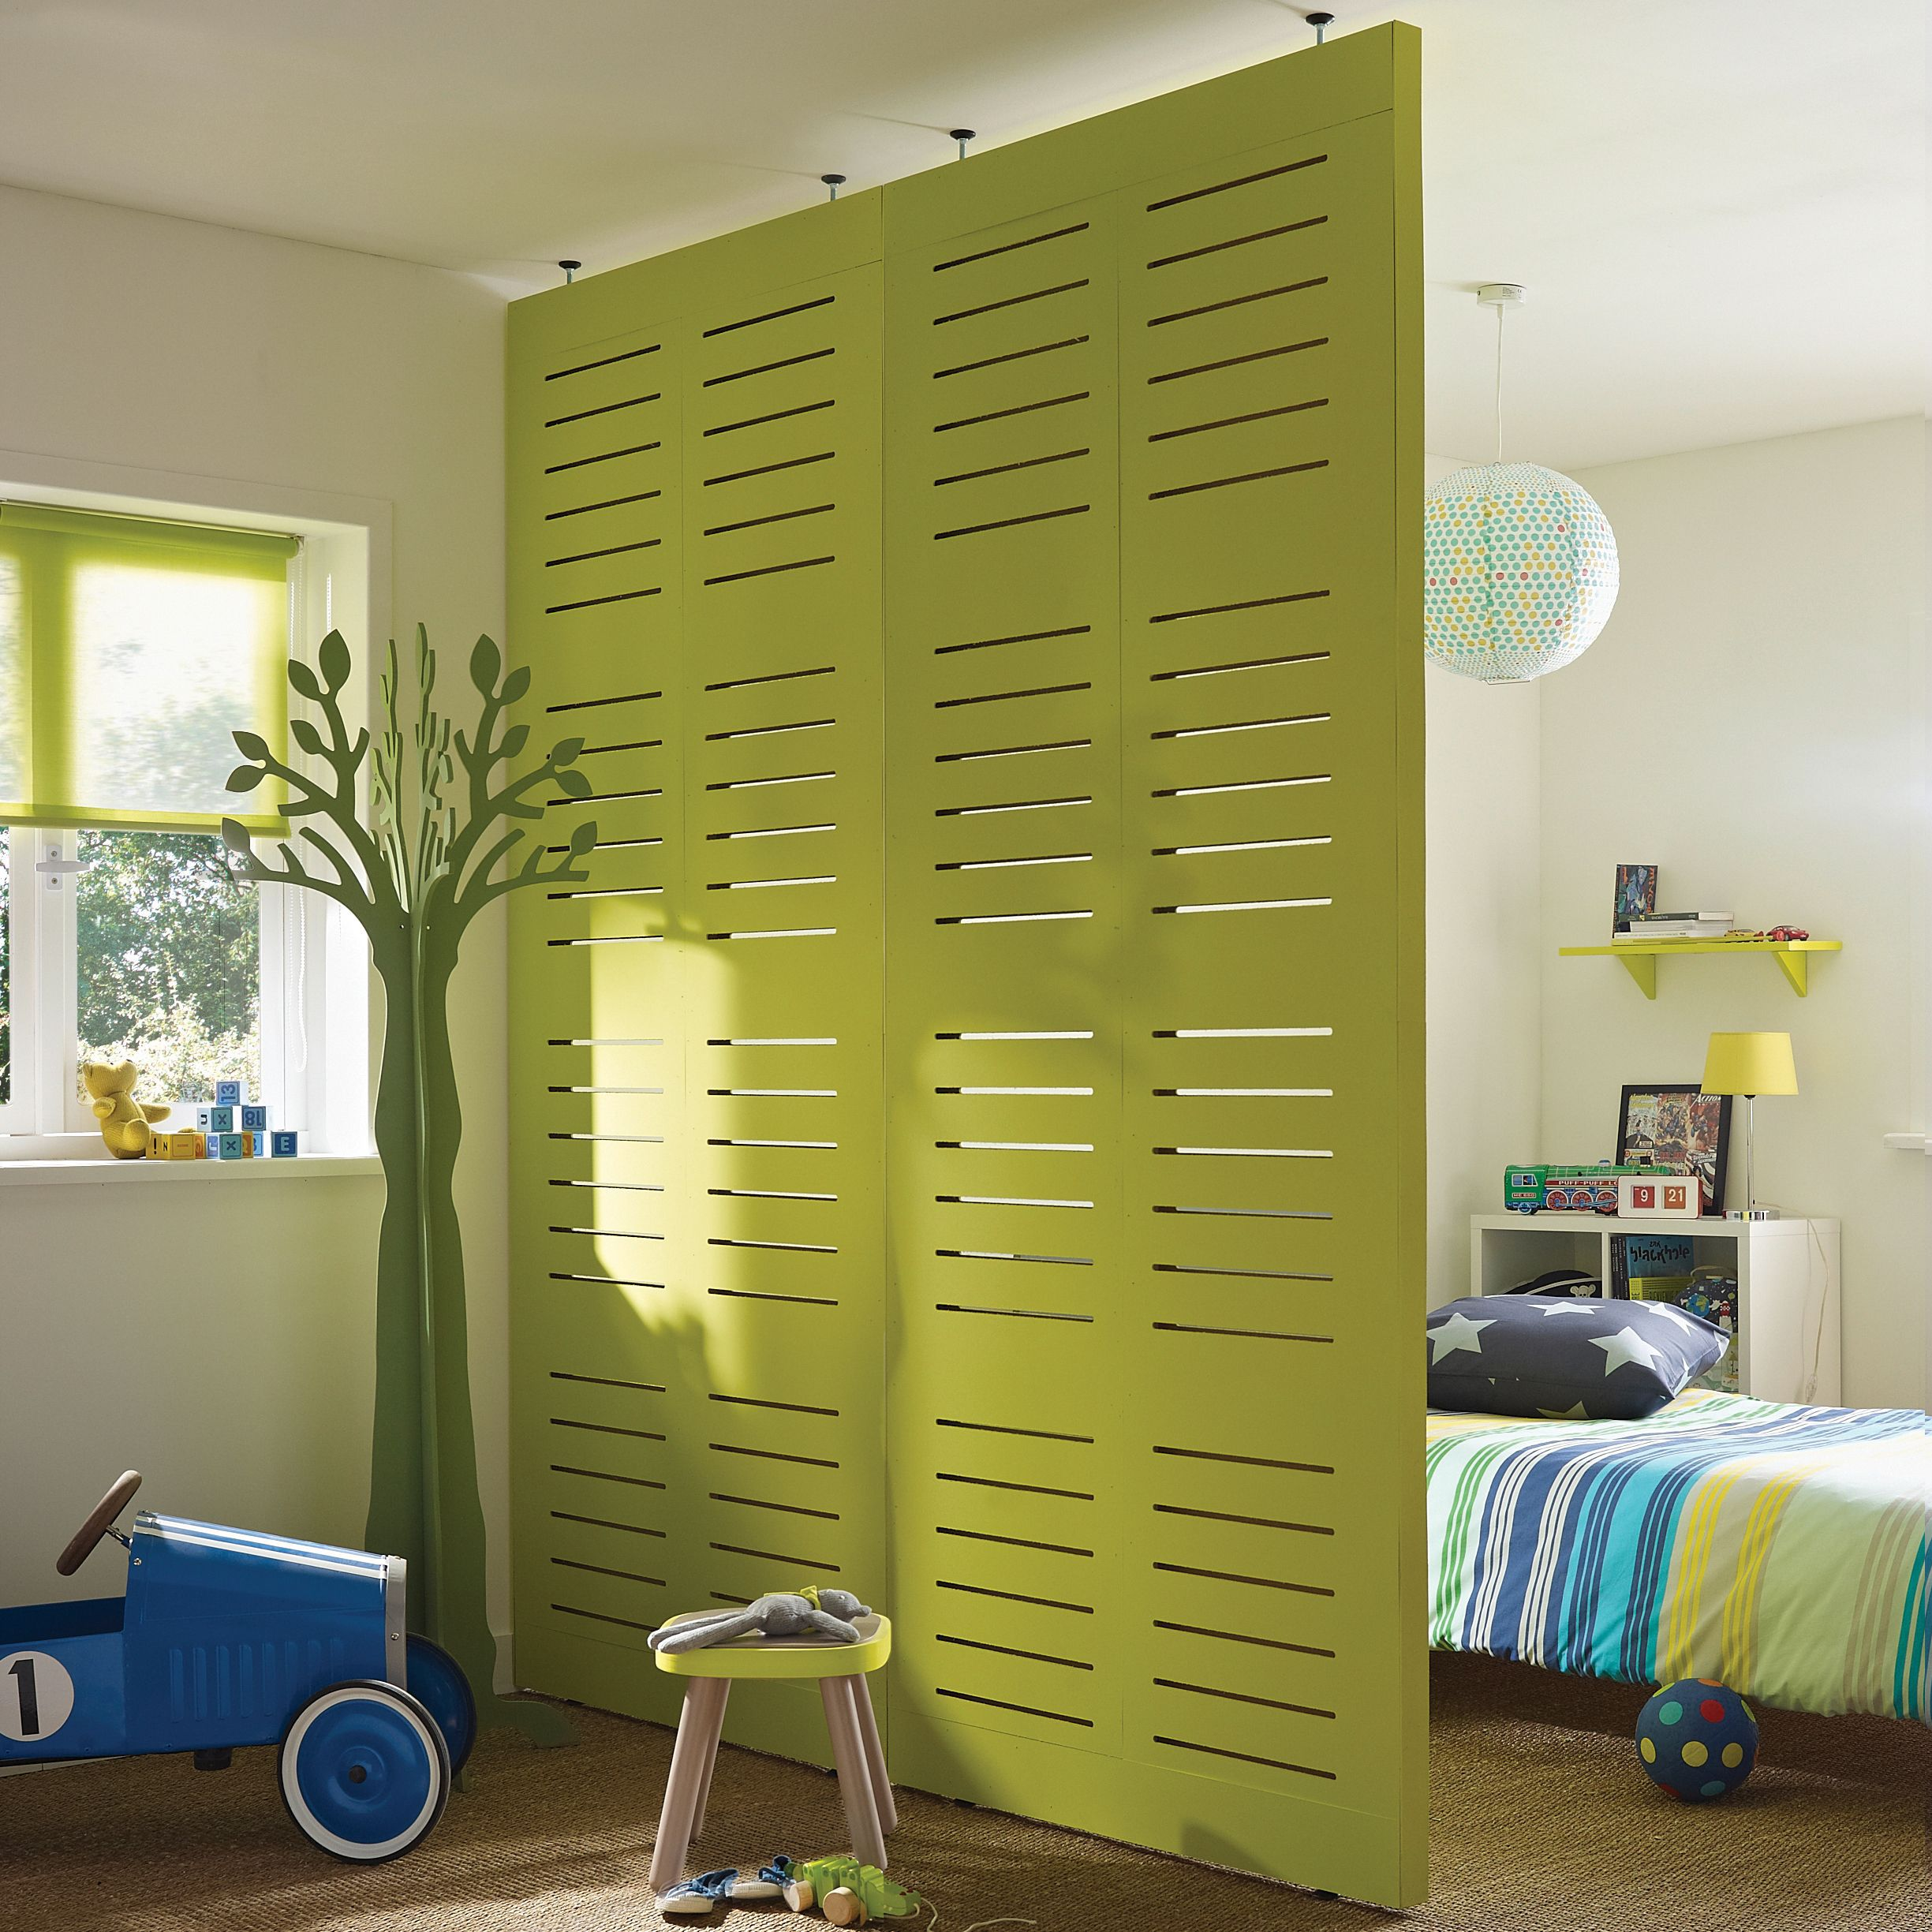 Karalis Room Divider | Departments | DIY at B&Q